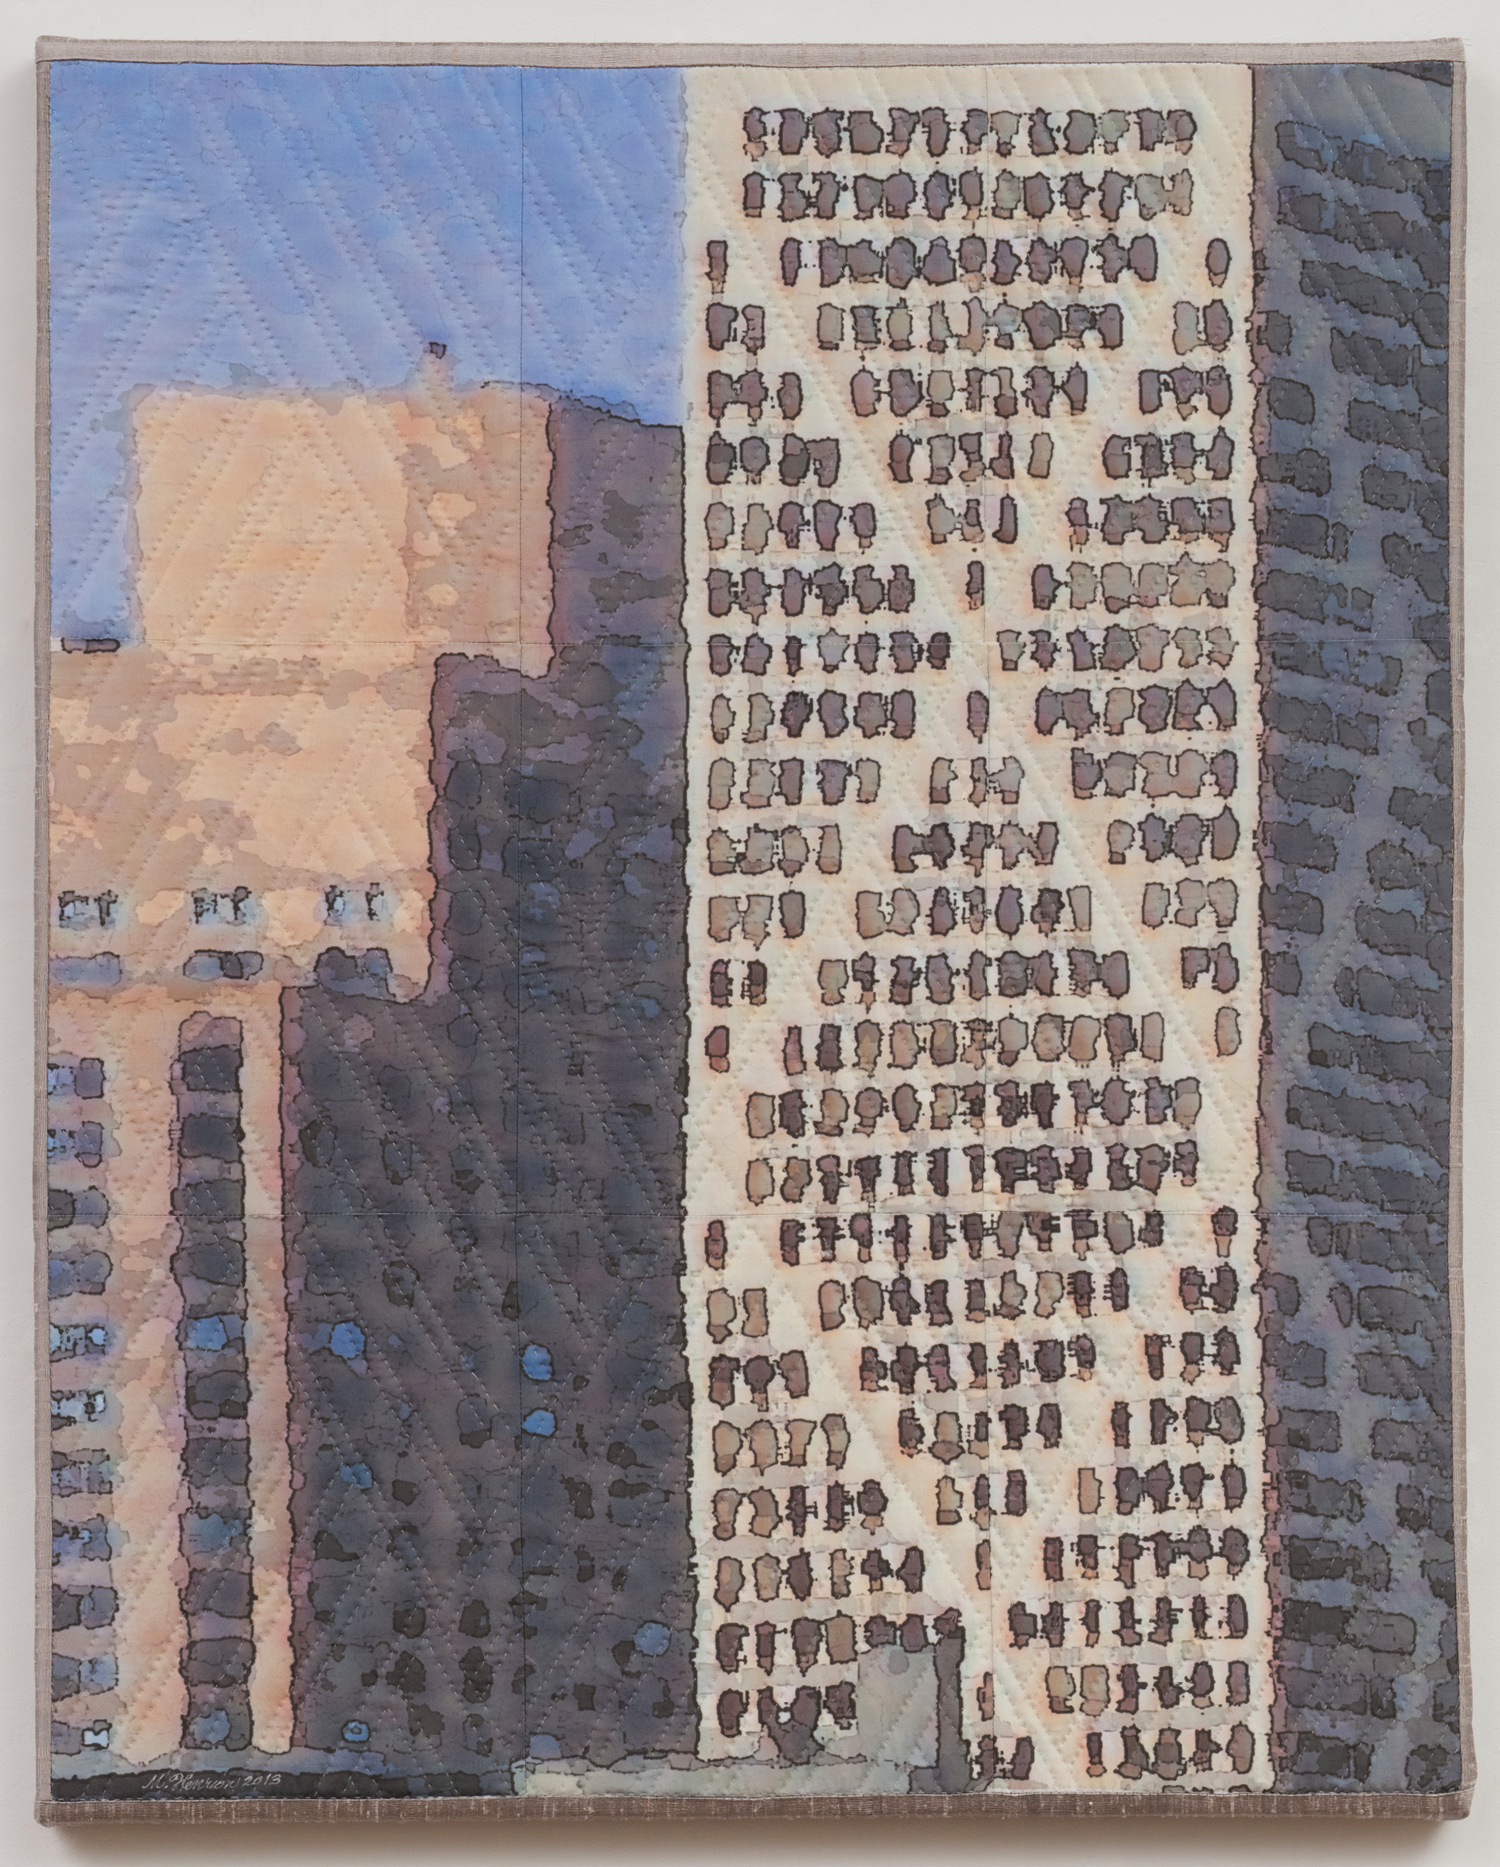 "2000-3. Chicago Windows 1304, 30""x24""x1"", mixed media on silk, pieced, hand quilted, gallery-wrapped stretched canvas"